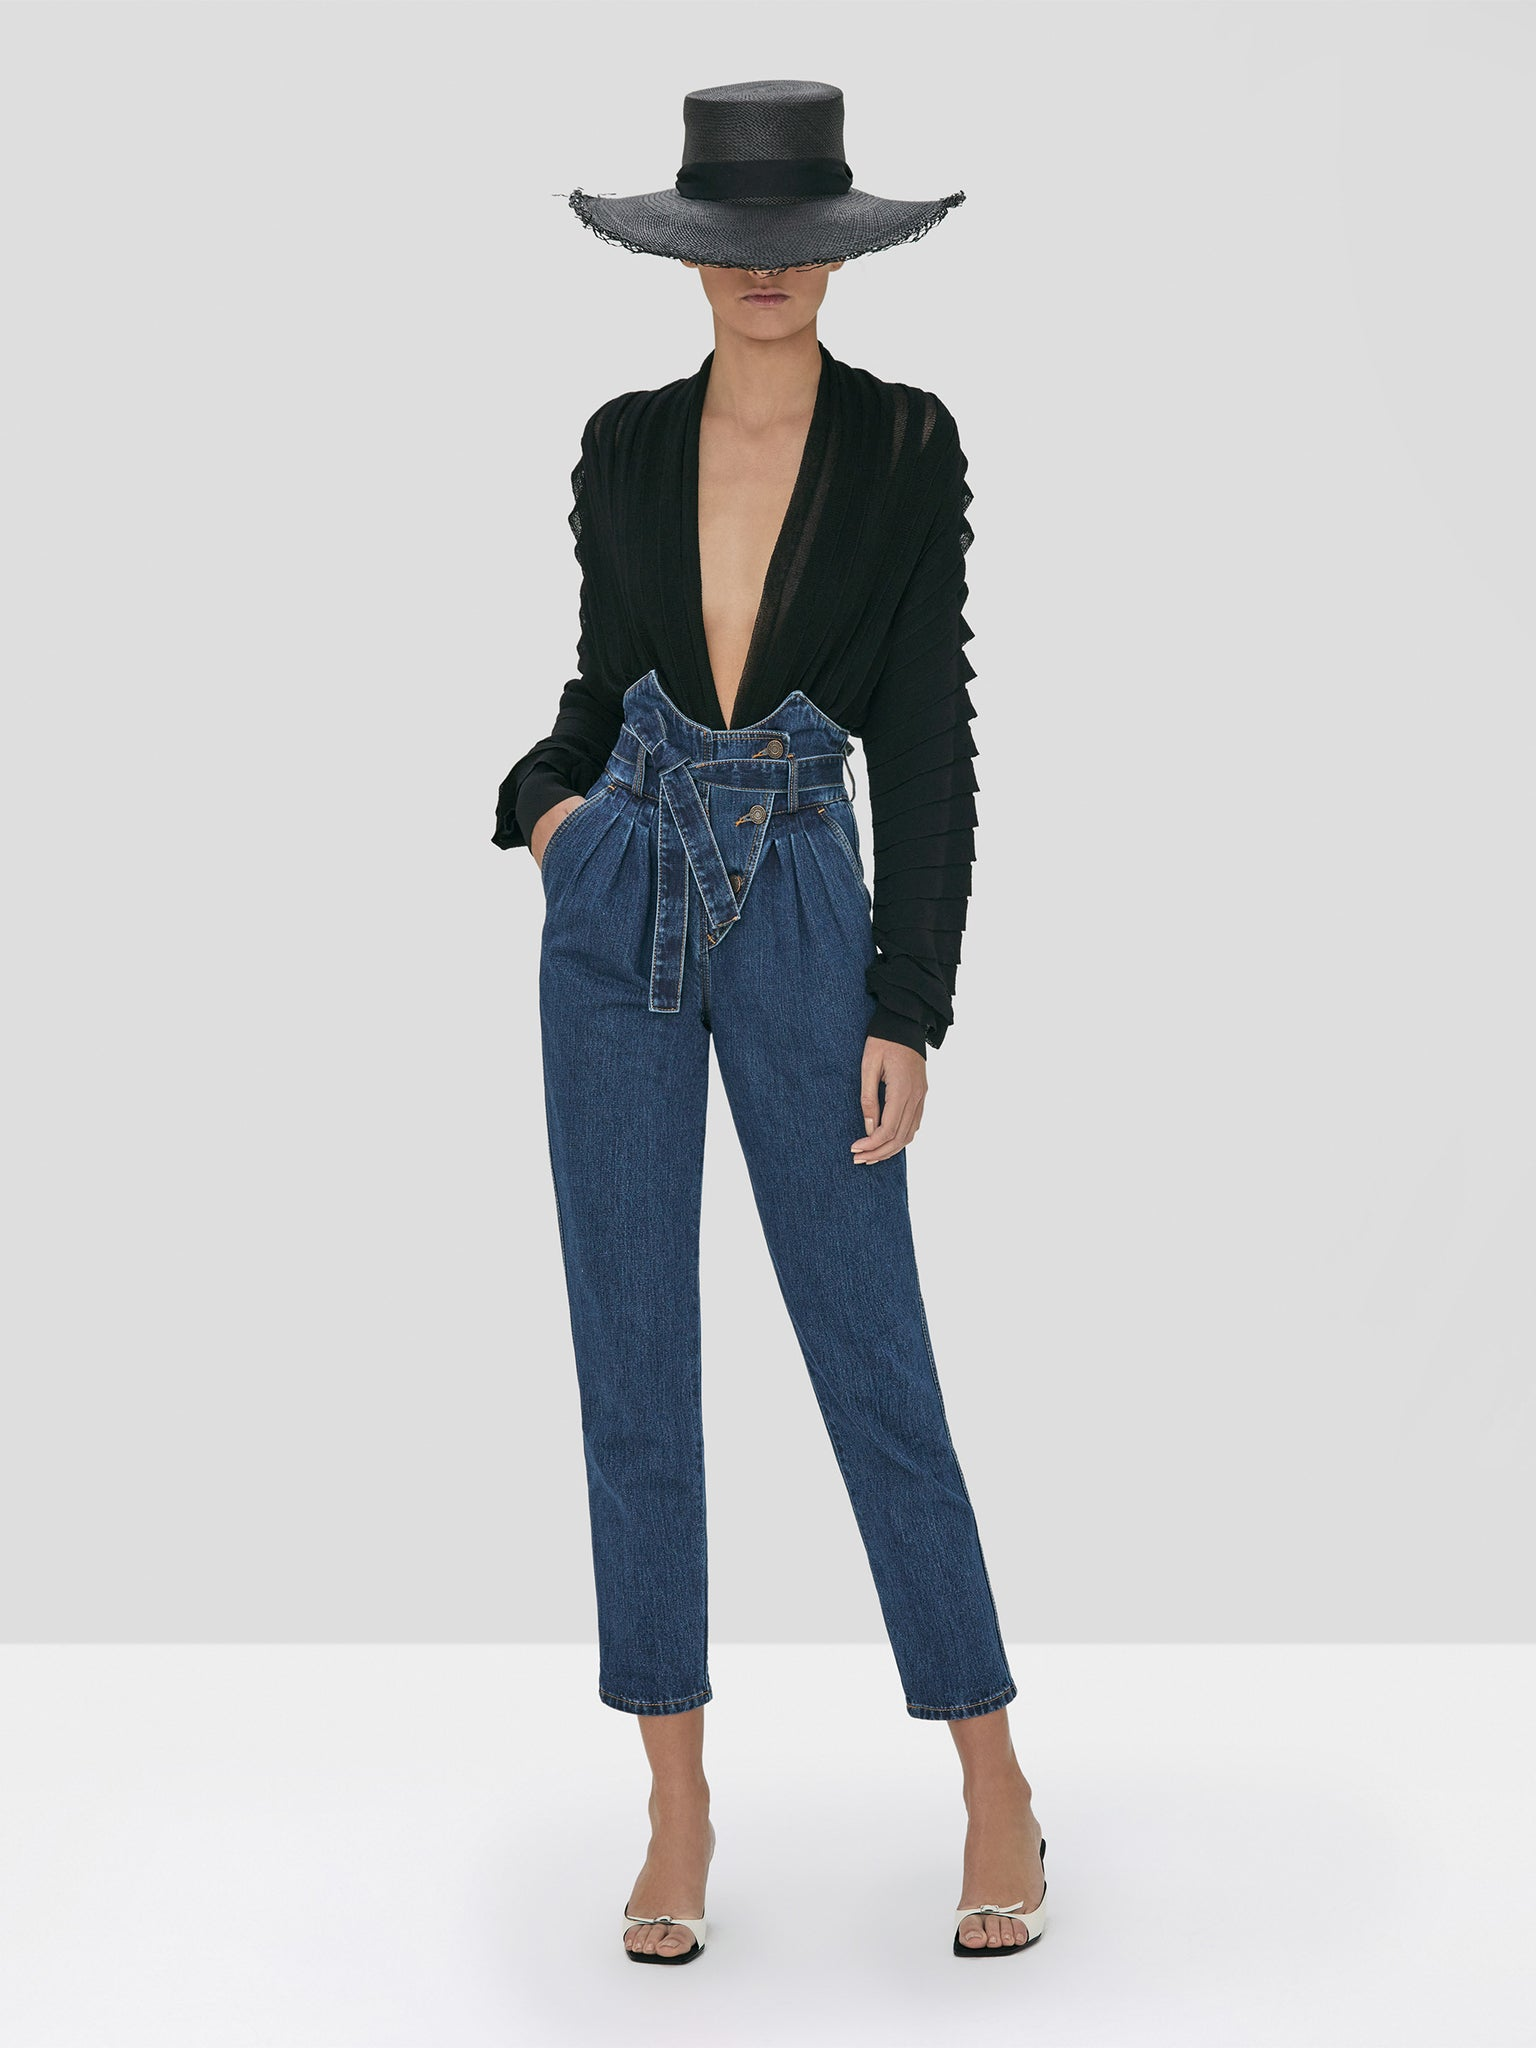 Alexis Oziel Top in Black and Stannis Denim Pant in Washed Denim from Spring Summer 2020